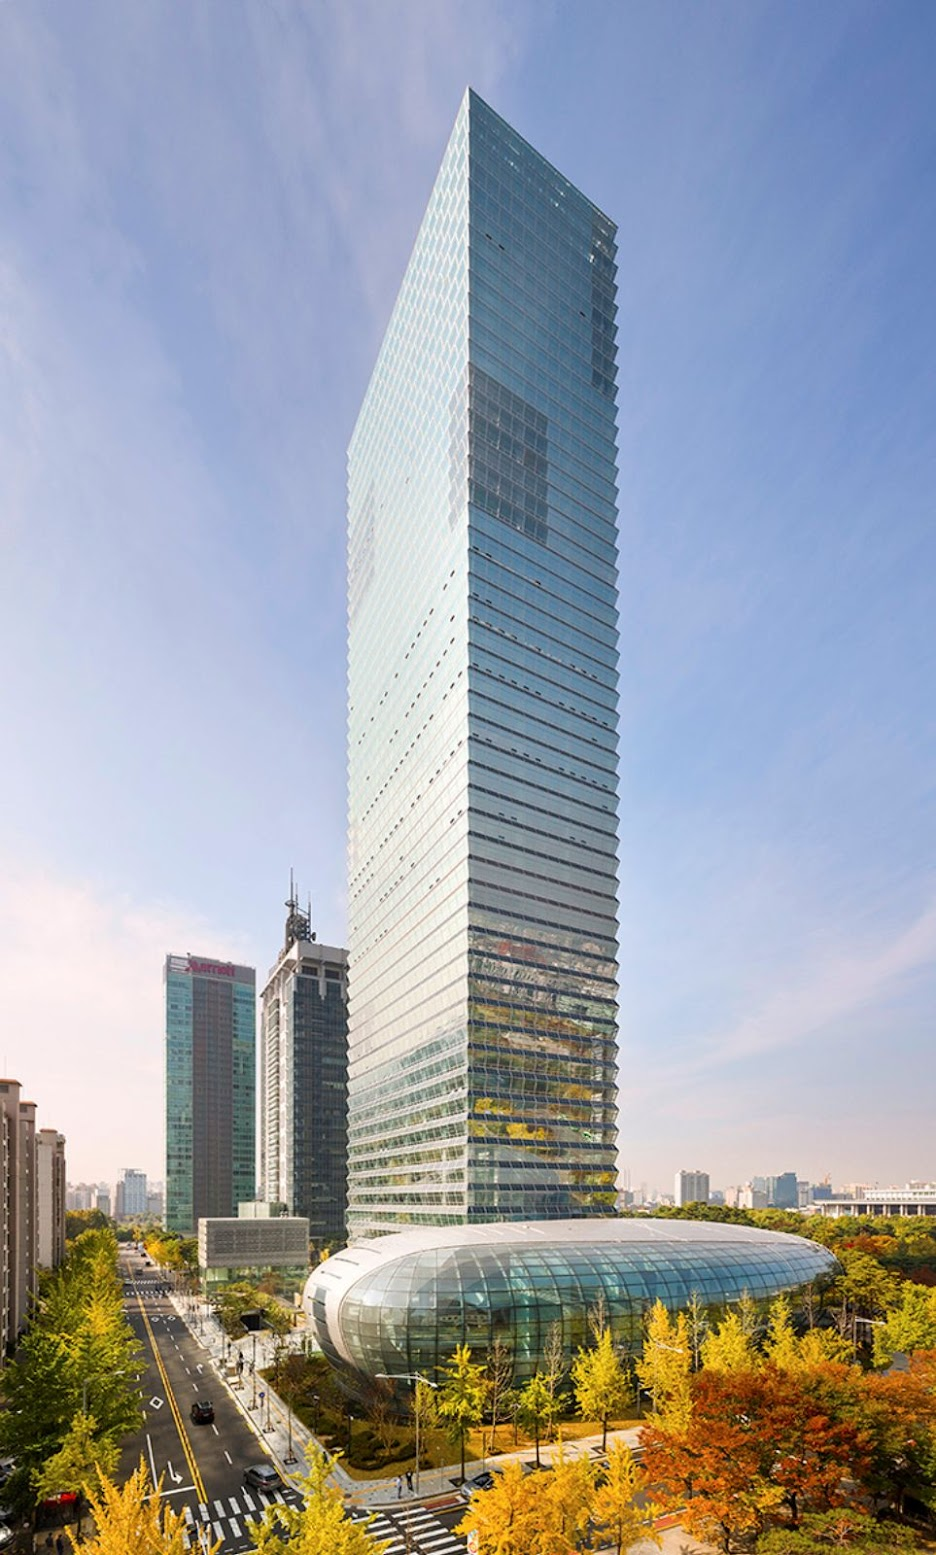 Seul, Corea del Sud: [FEDERATION OF KOREAN INDUSTRIES TOWER BY ADRIAN SMITH + GORDON GILL]